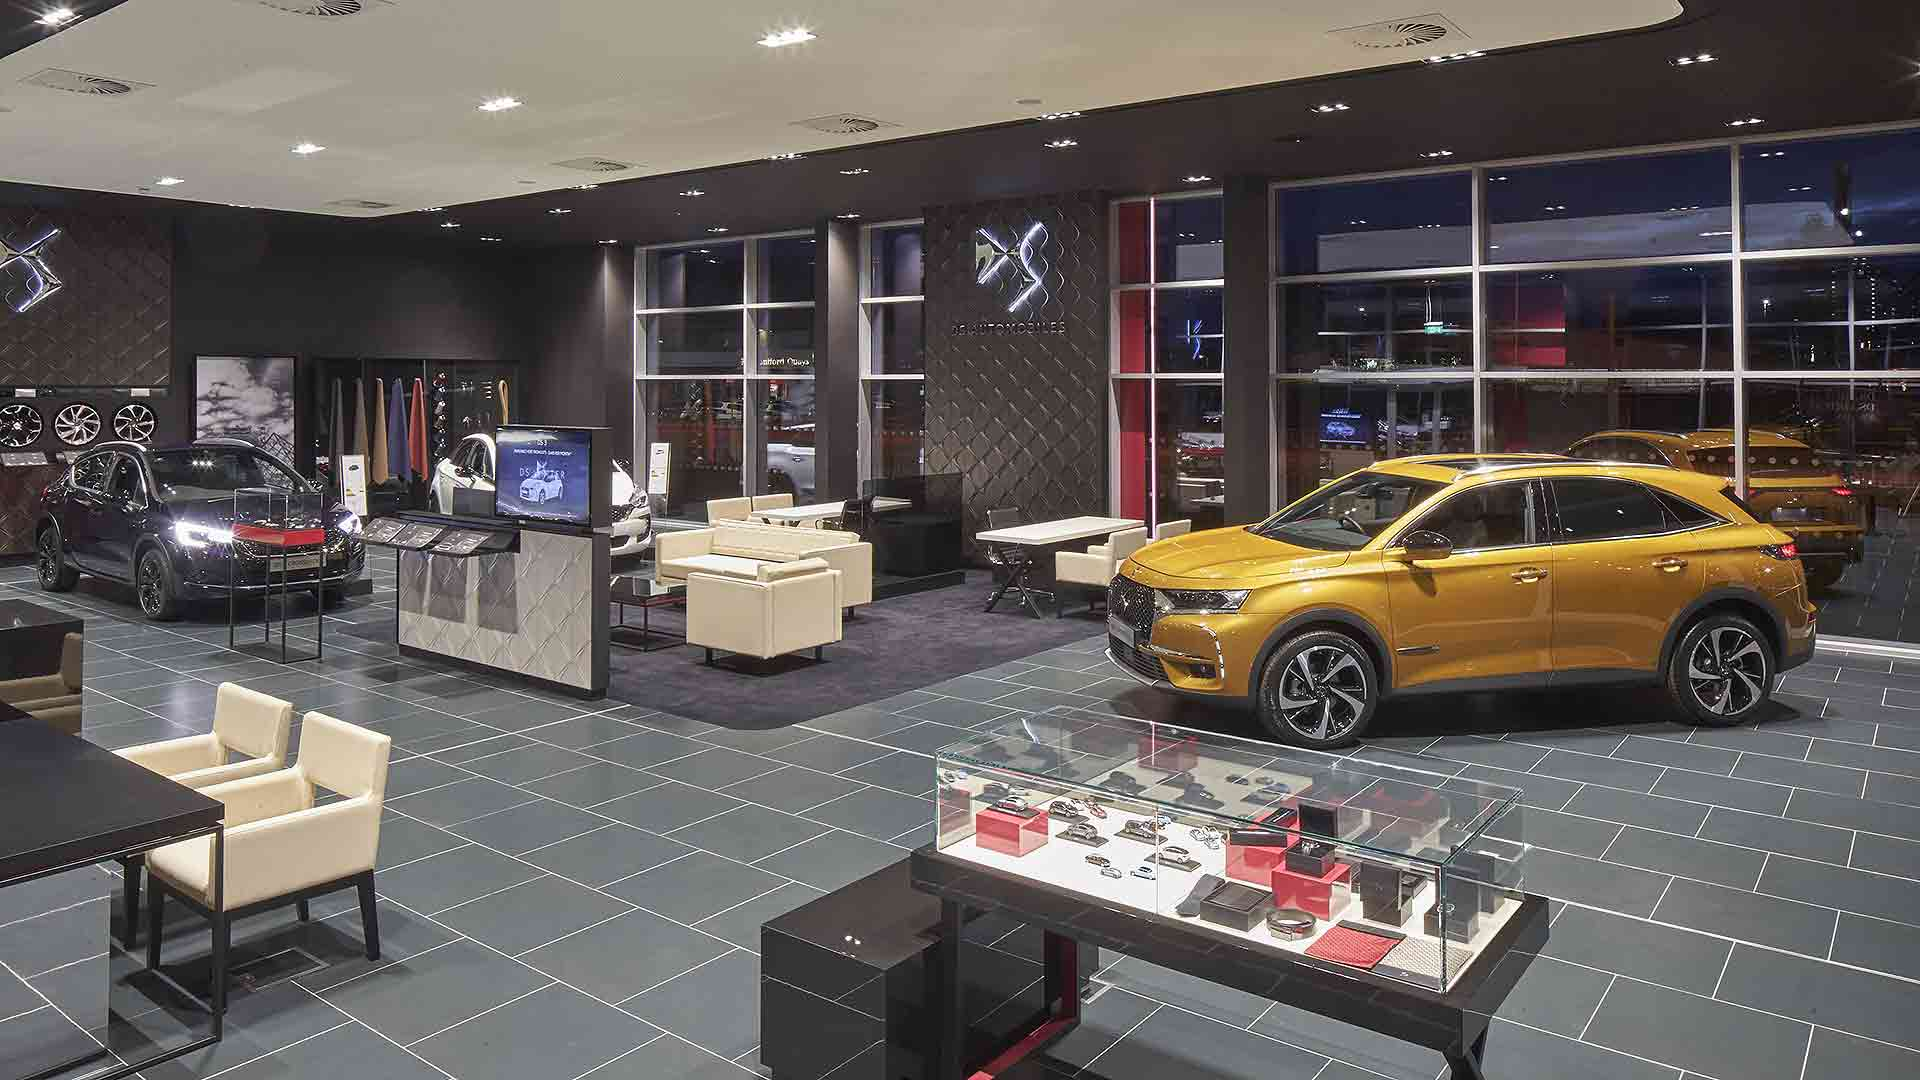 DS Store in Manchester. Car showrooms are spacious areas that are as safe as garden centres, says the industry trade body